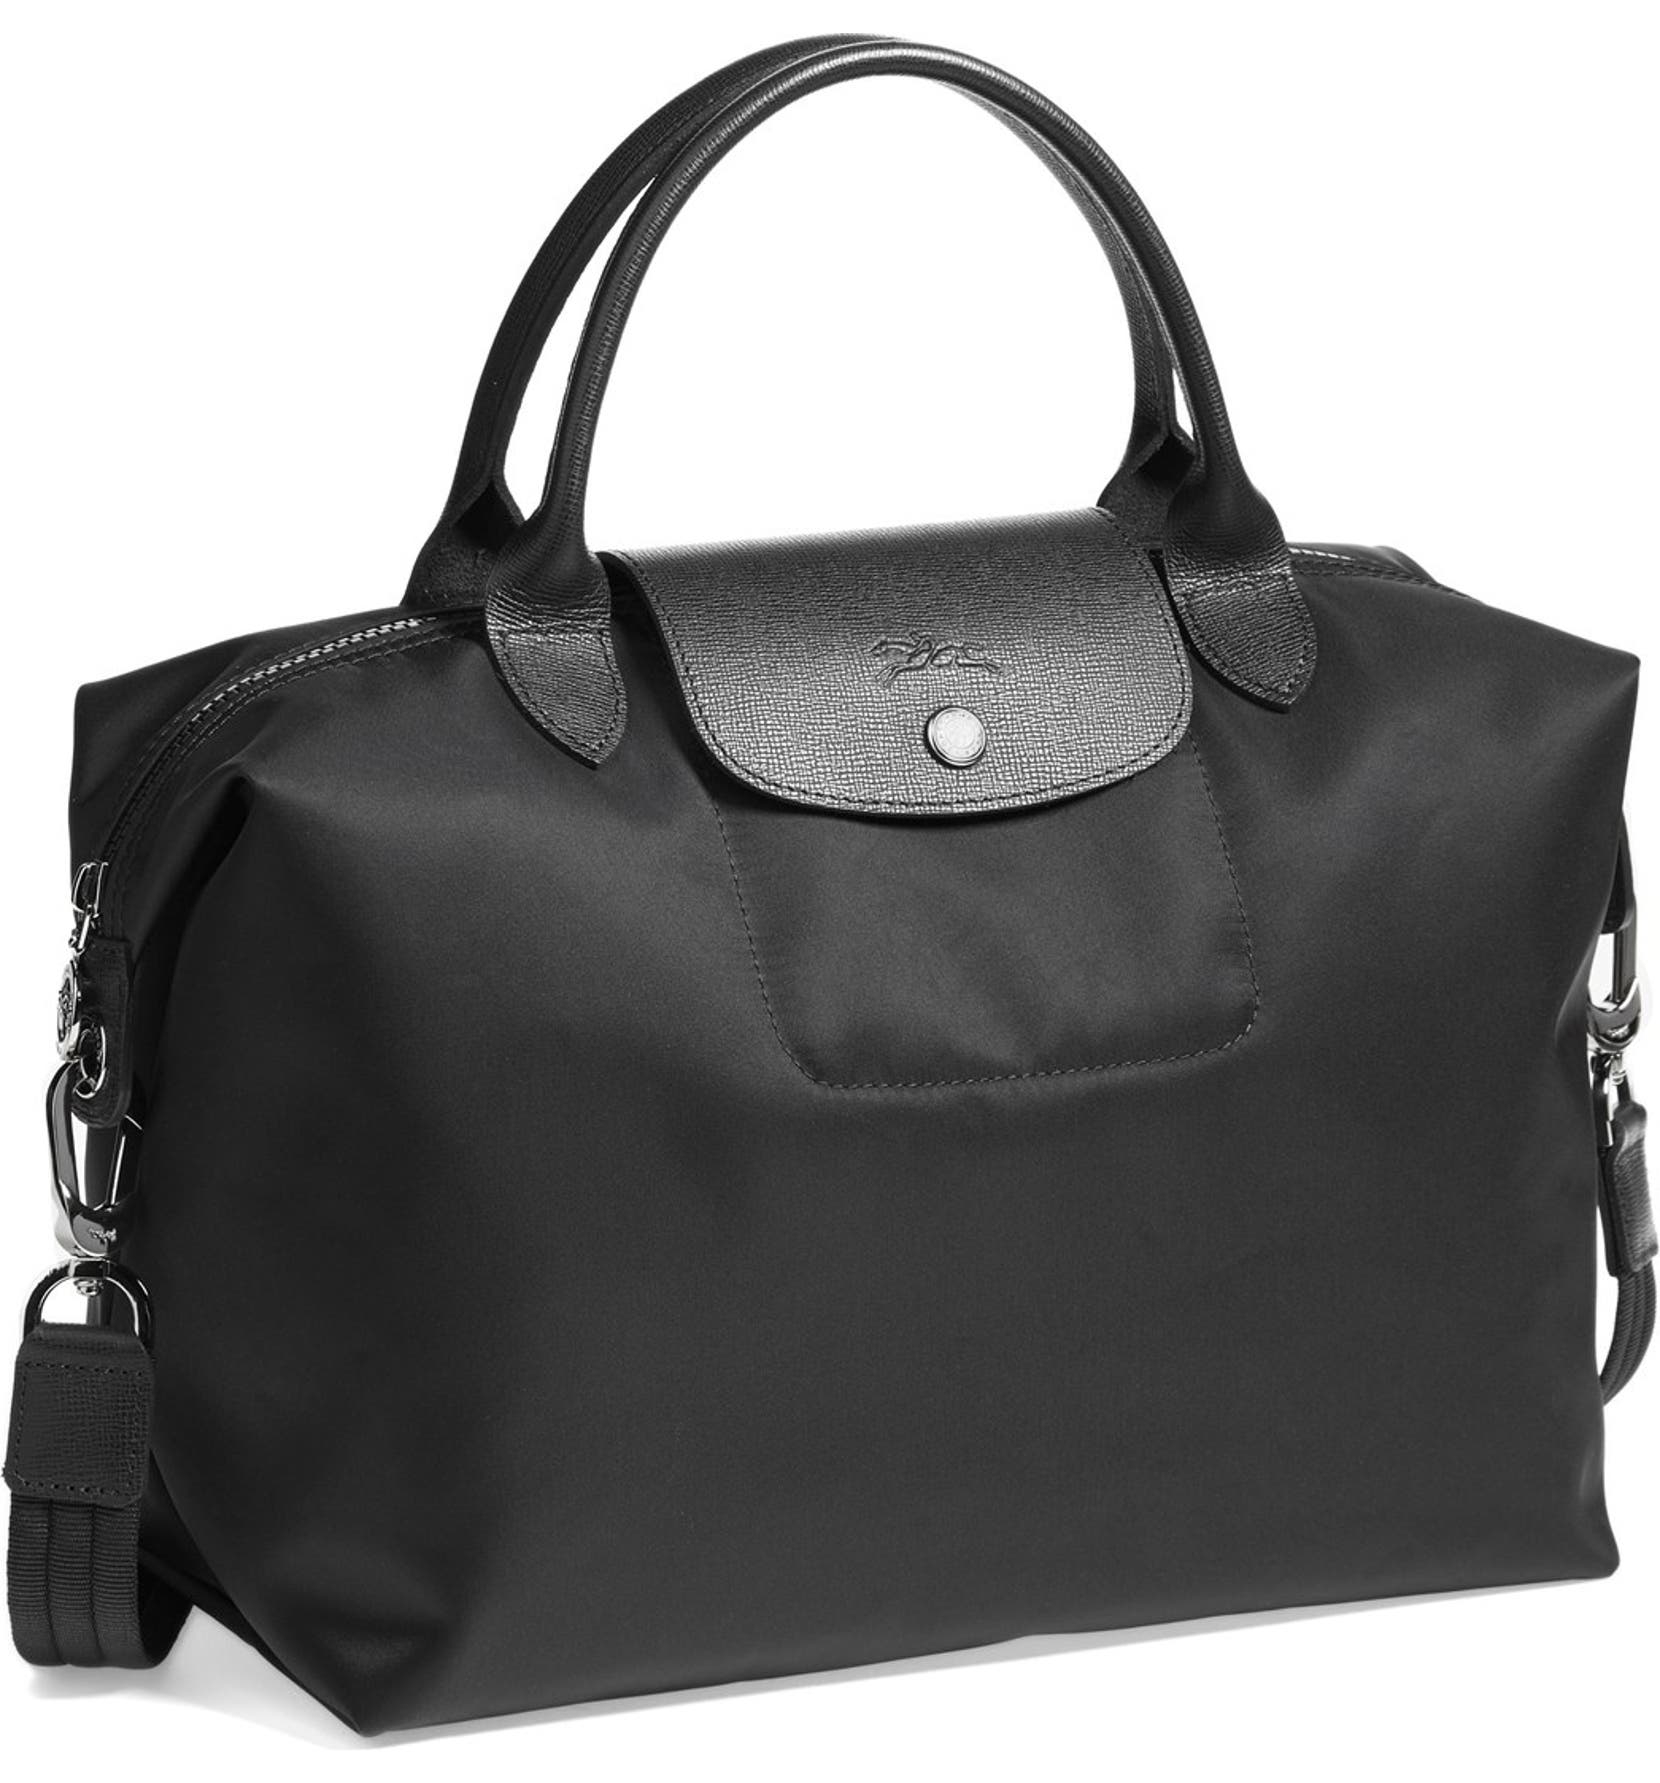 5d1dee56157f Longchamp  Medium Le Pliage Neo  Nylon Top Handle Tote